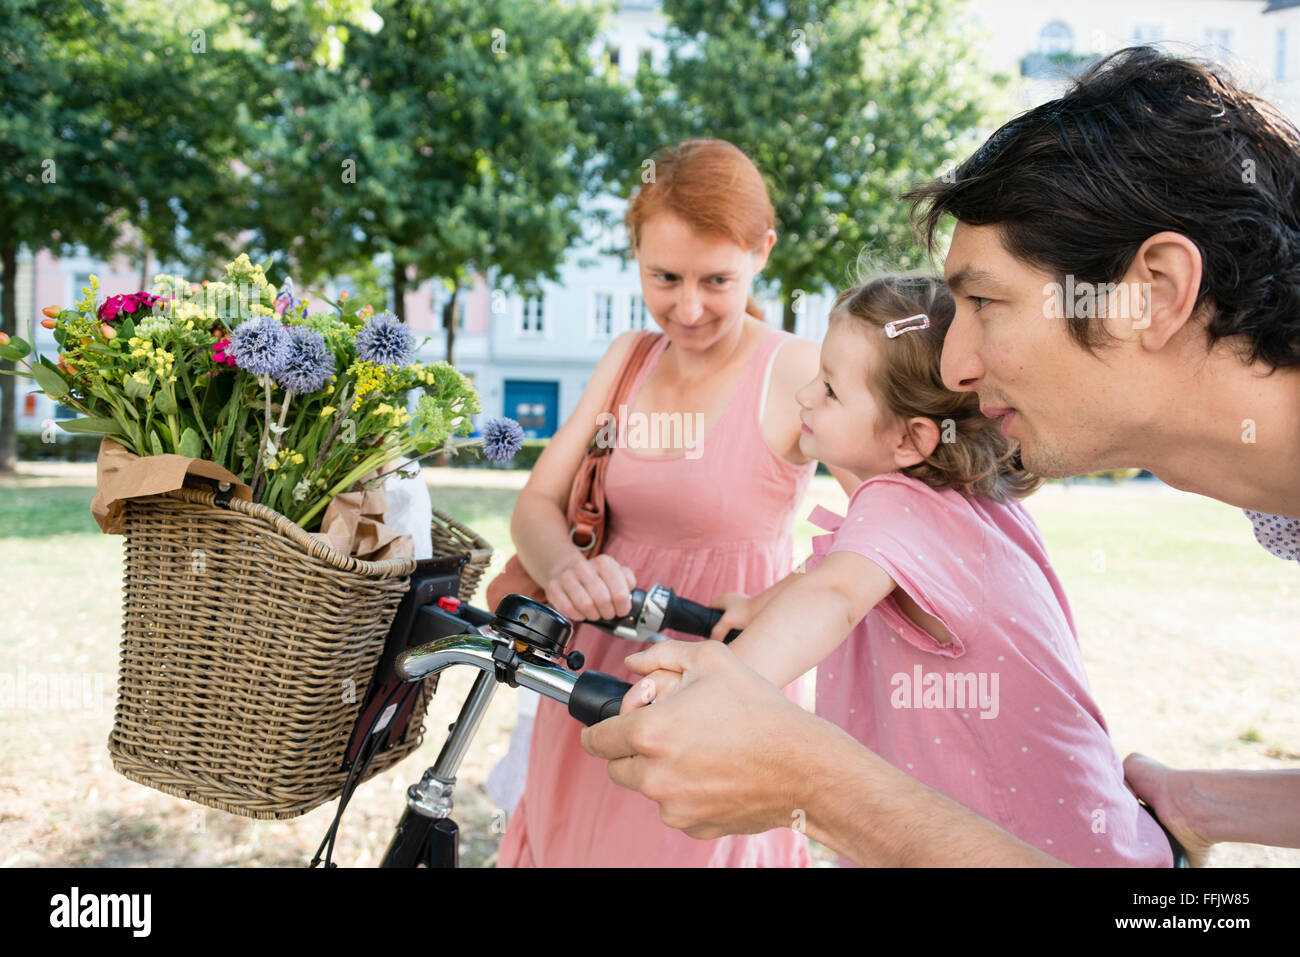 Family with two children and bicycle - Stock Image